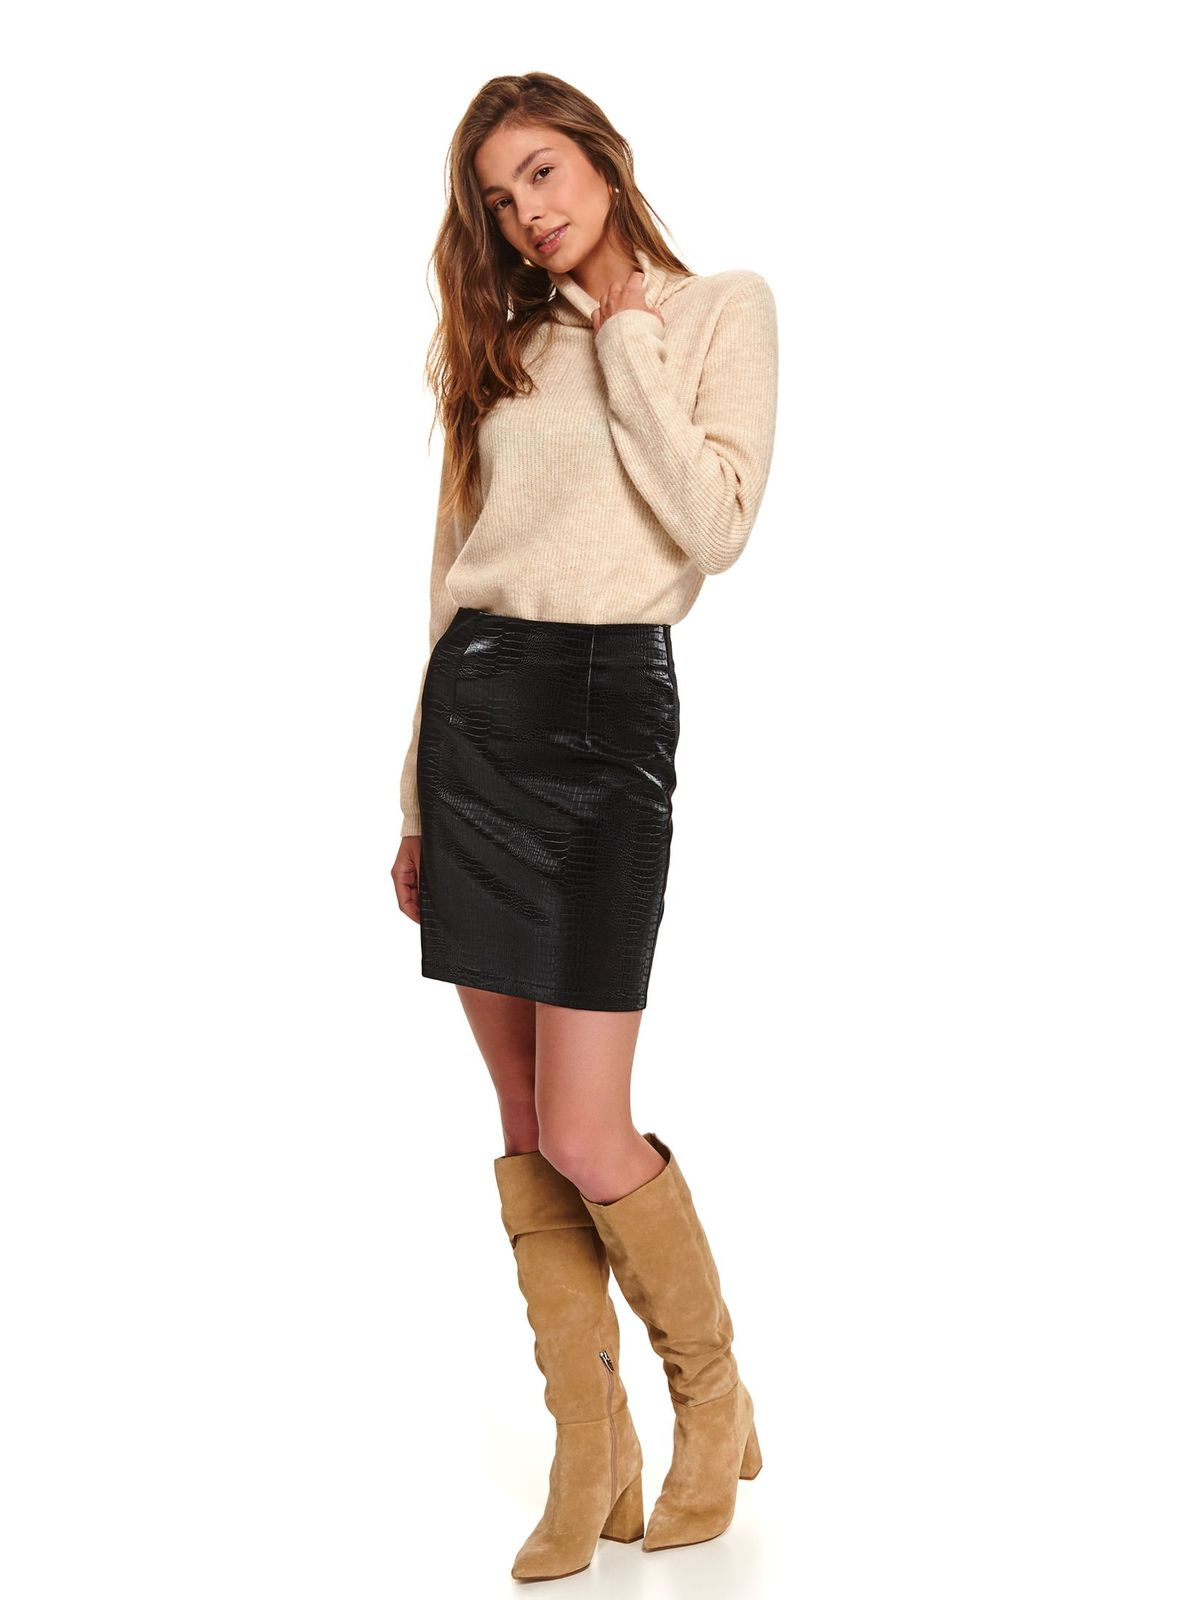 Black skirt pencil with medium waist patterned sole